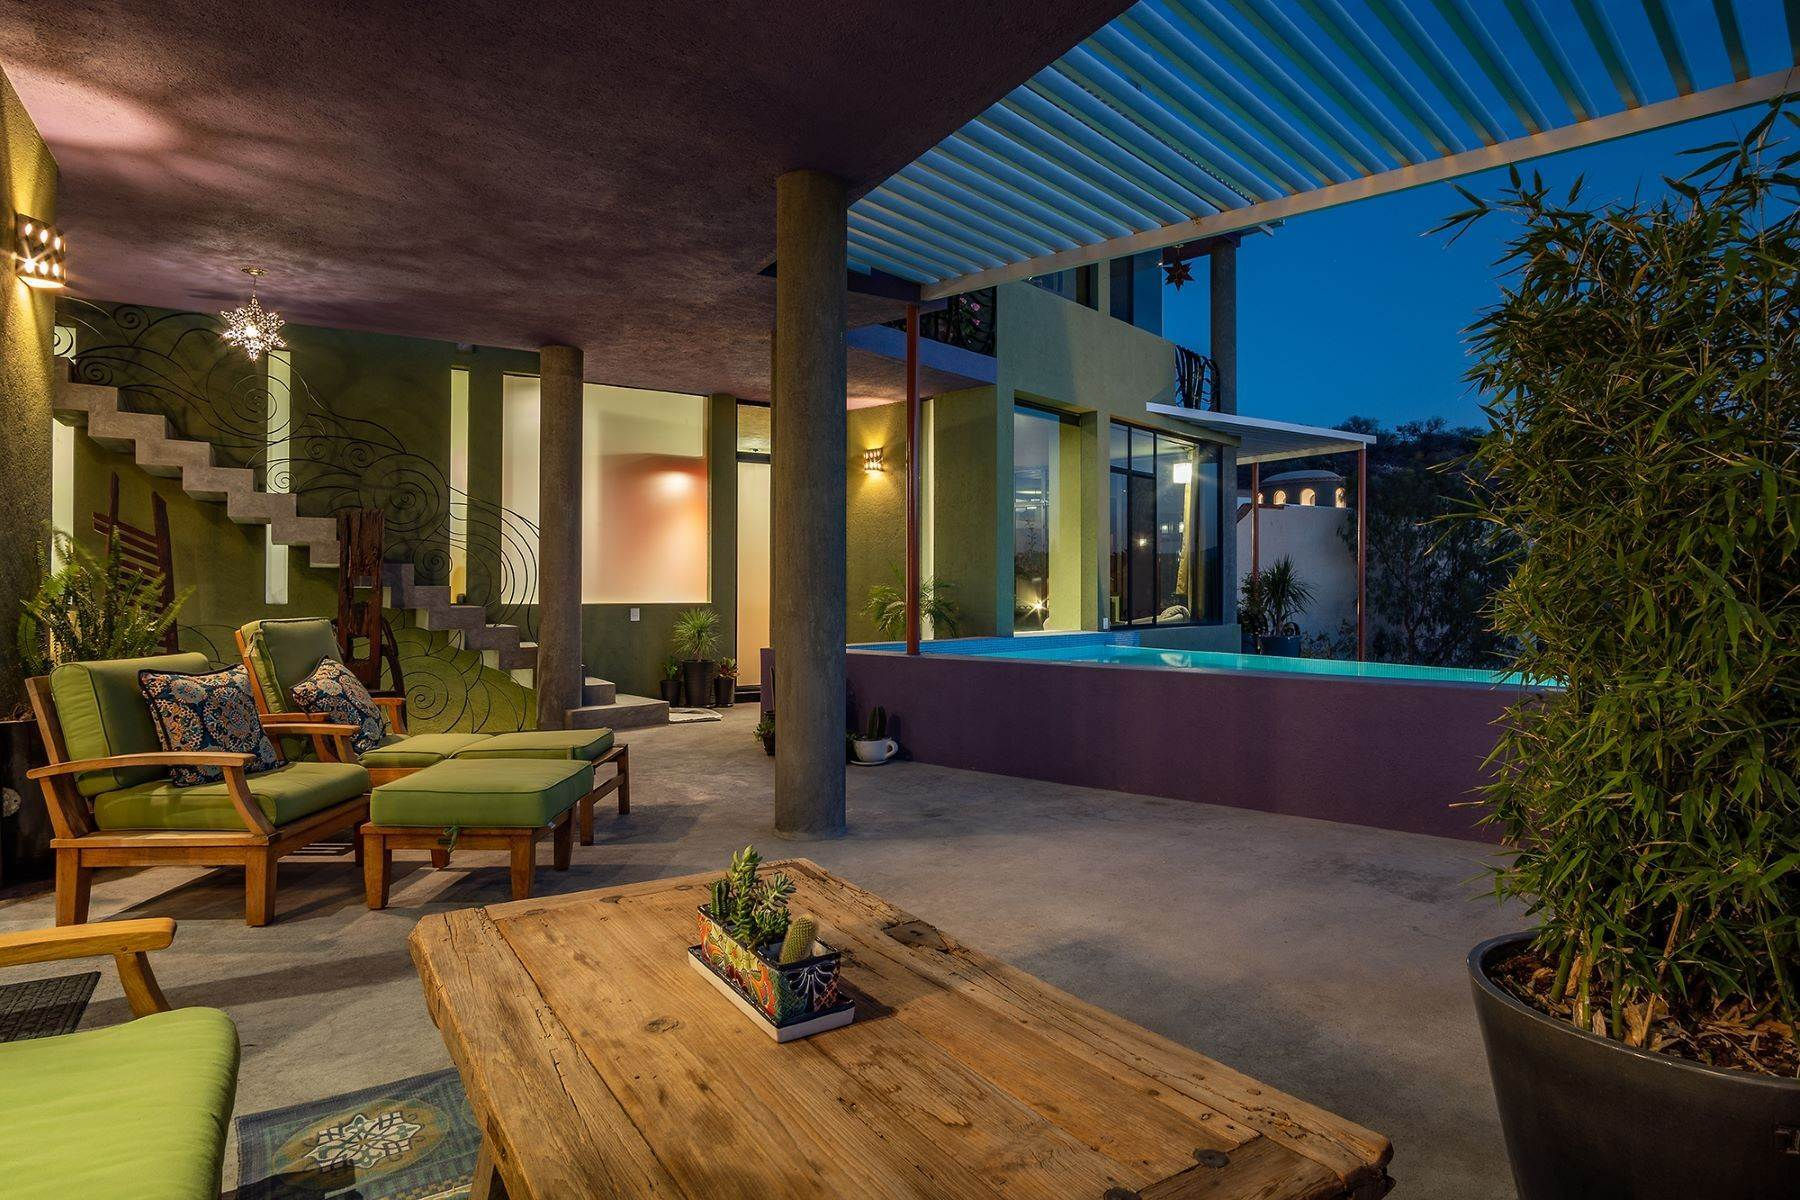 Single Family Homes for Sale at Casa Colibri Principal de Obraje 2 San Miguel De Allende, Guanajuato 37700 Mexico